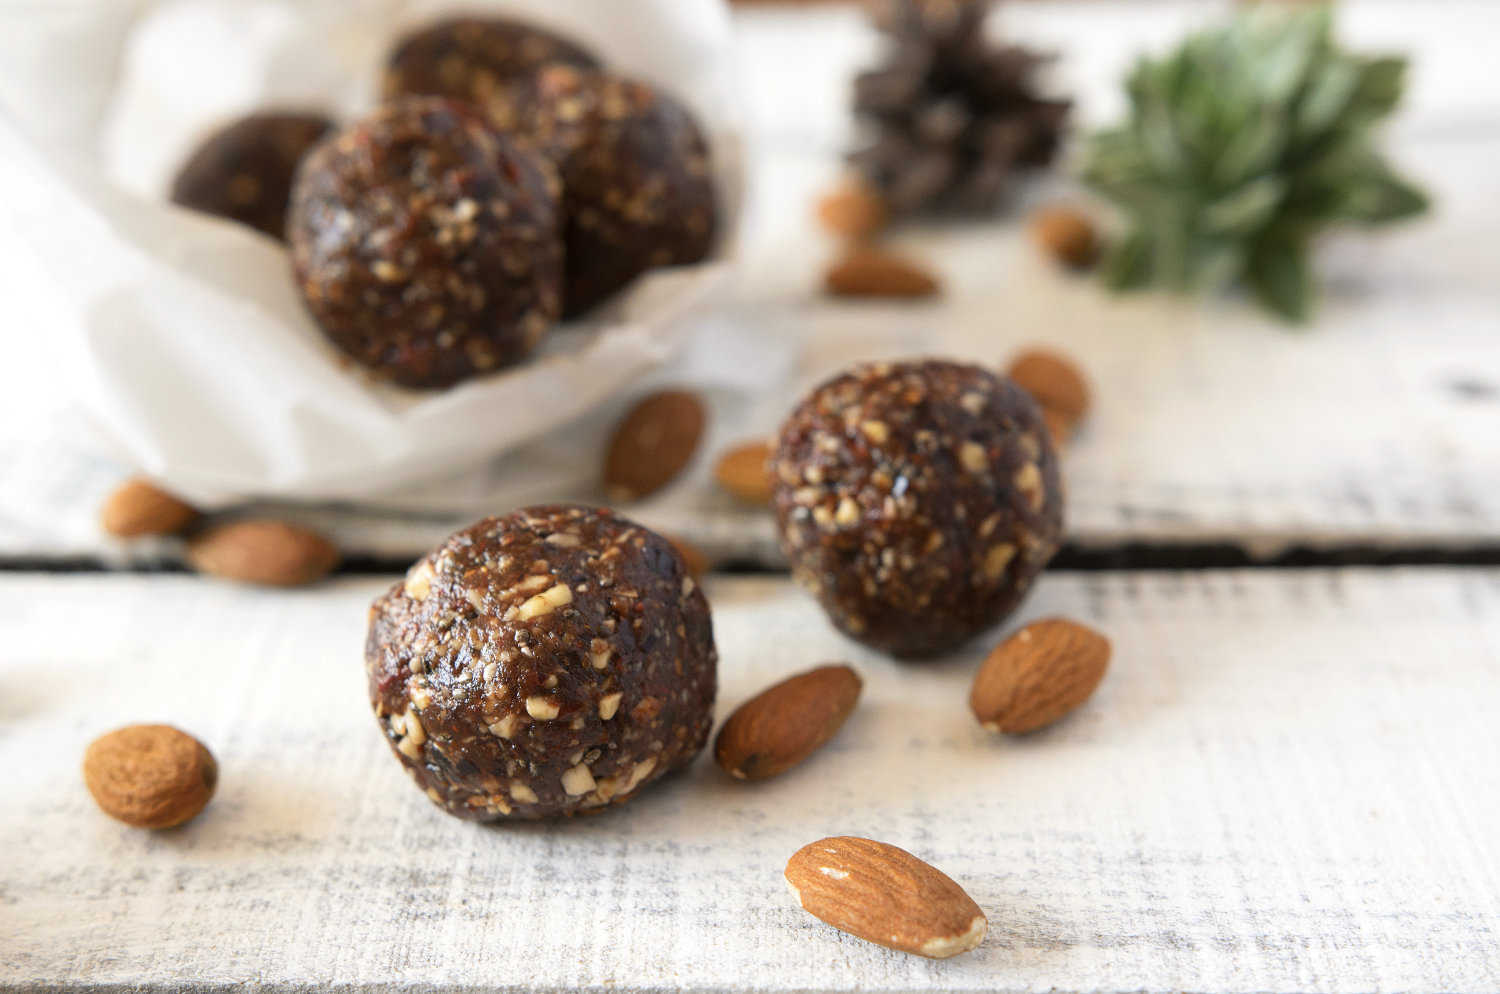 Bodytrim-Choc-Nut-Protein-Balls-Recipe-Weight-loss-Image